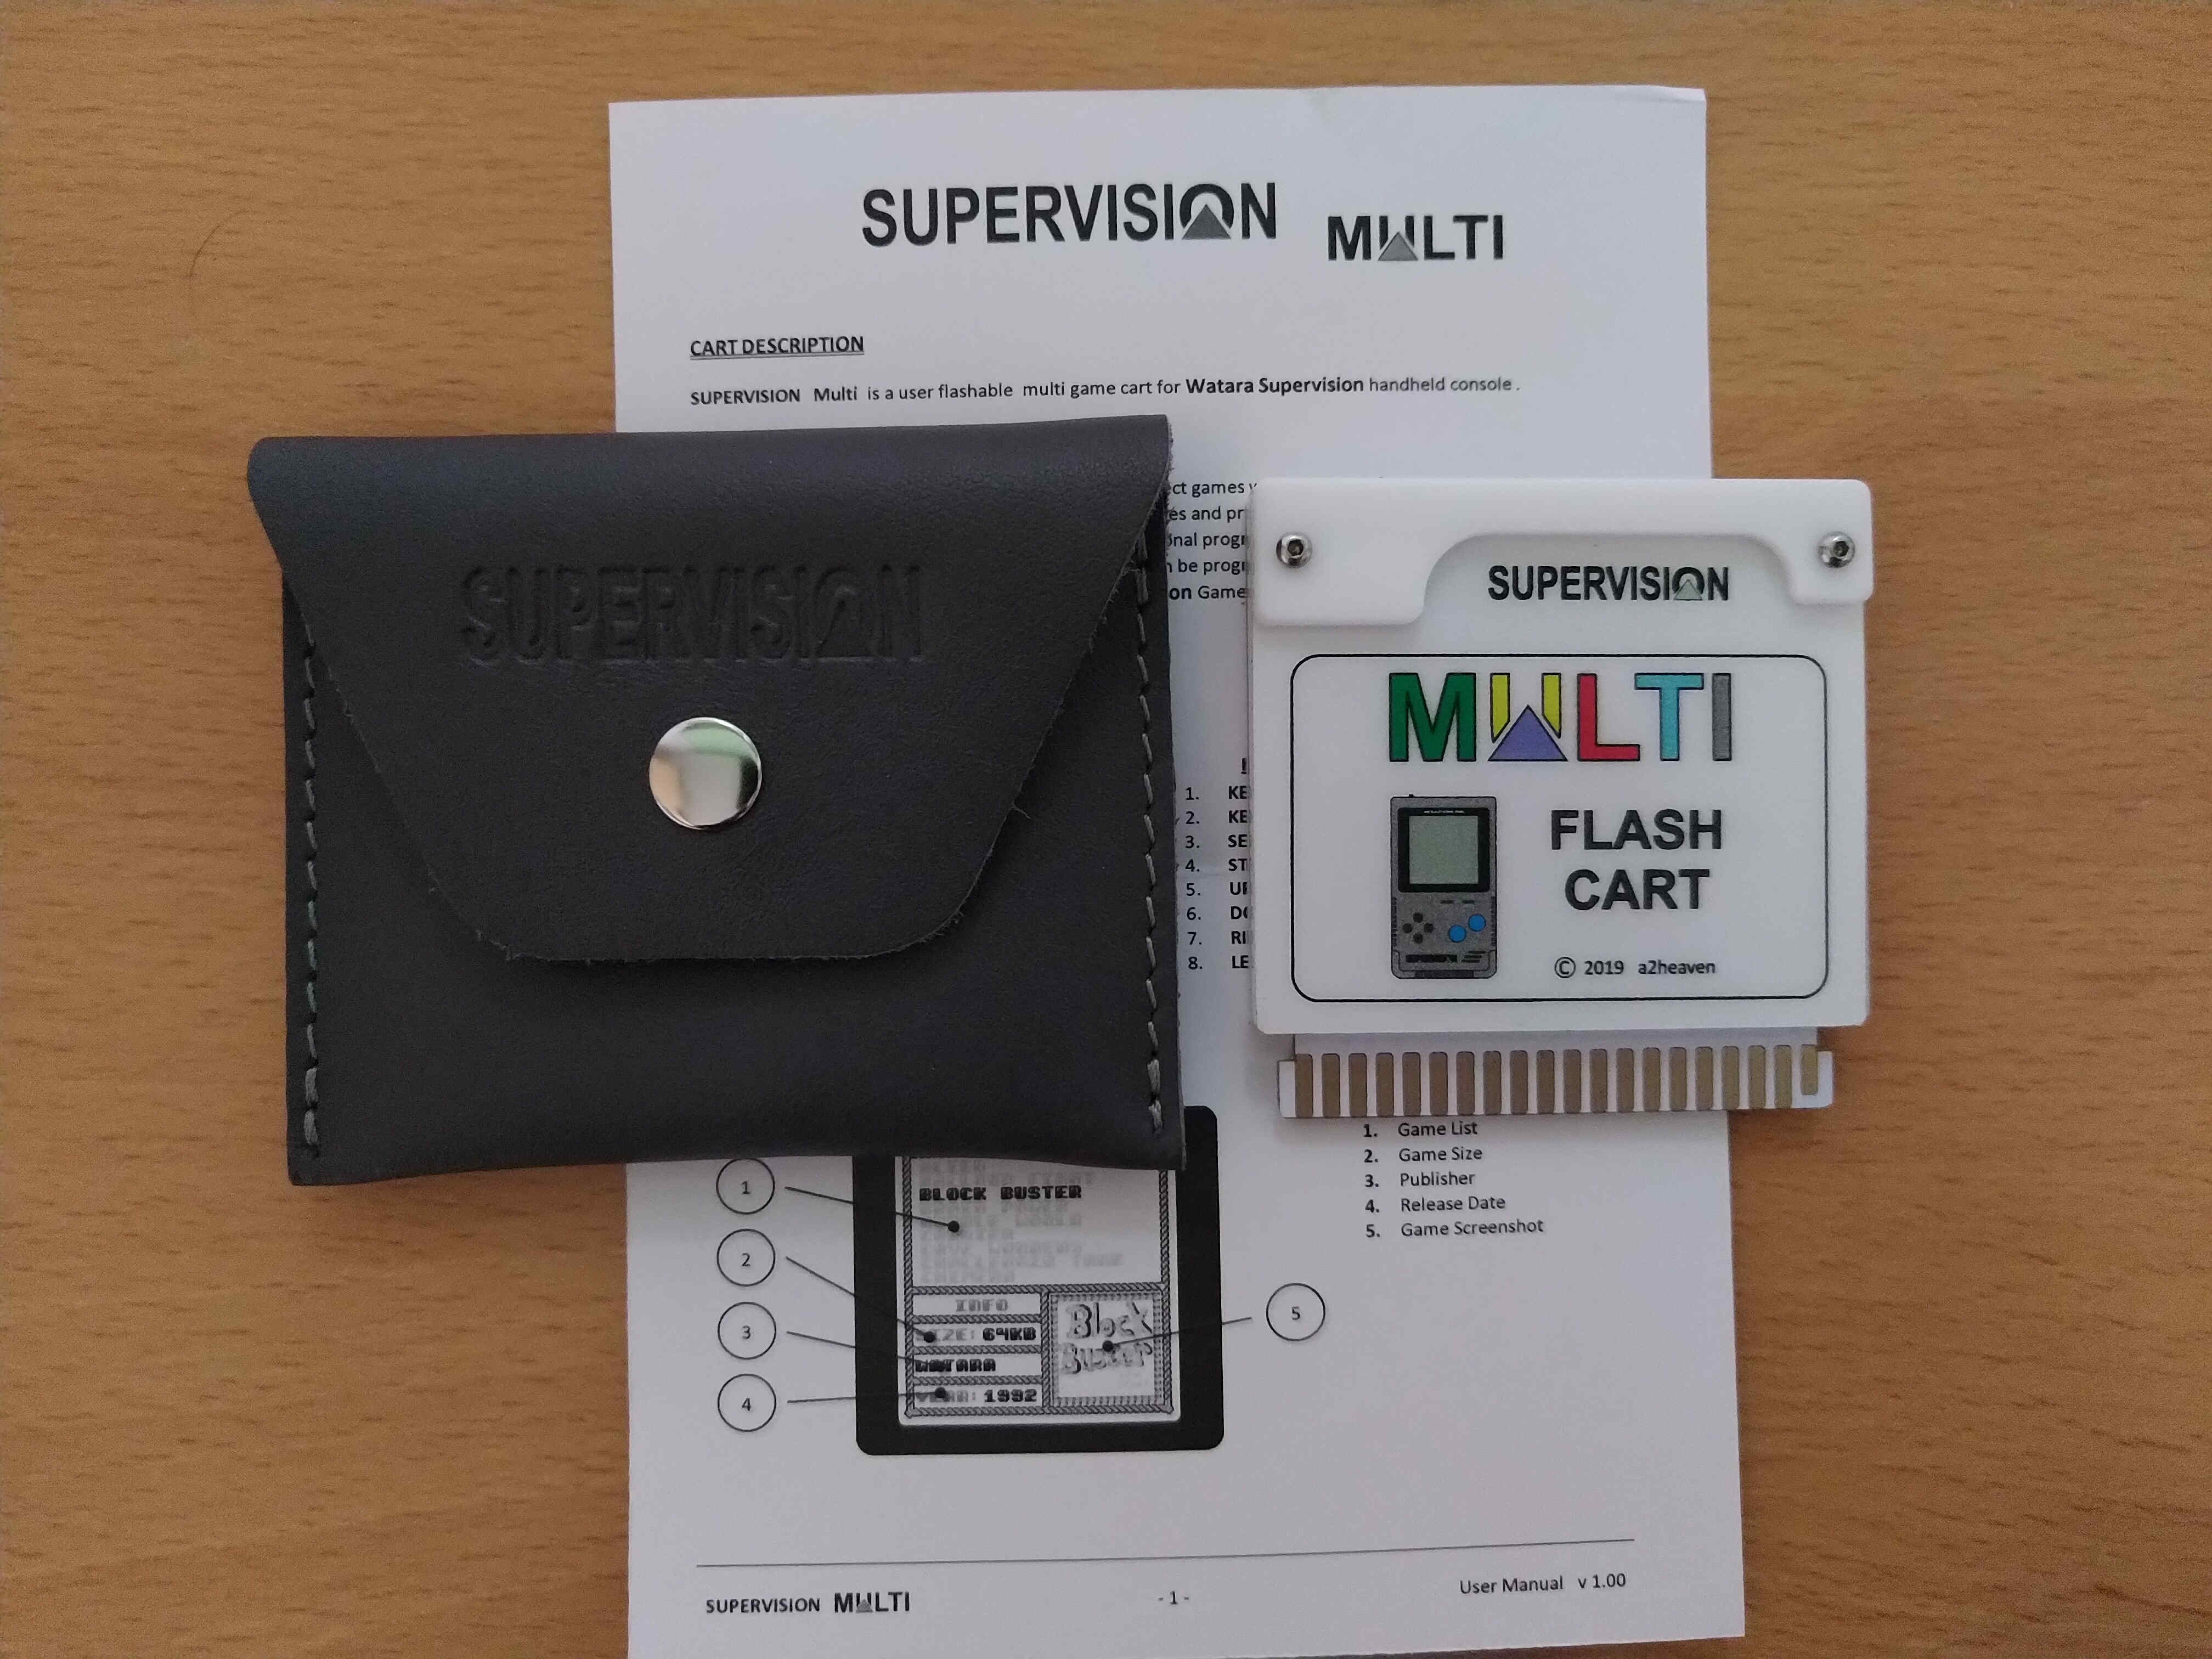 Multicart supervision a2heaven completo.jpg